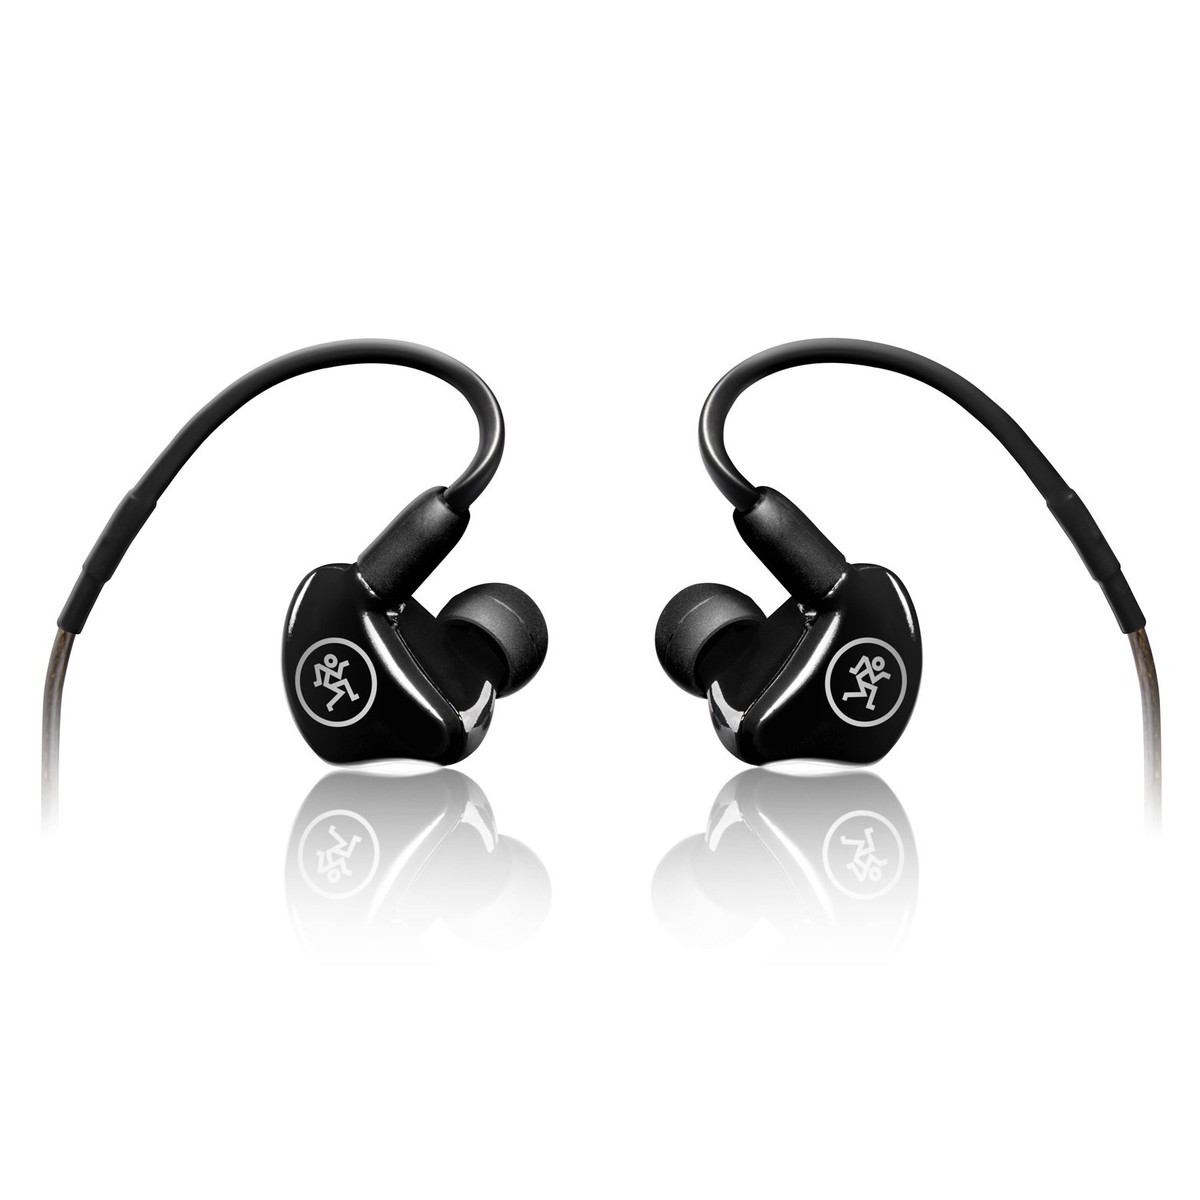 mackie mp 240 in ear monitors at gear4music. Black Bedroom Furniture Sets. Home Design Ideas